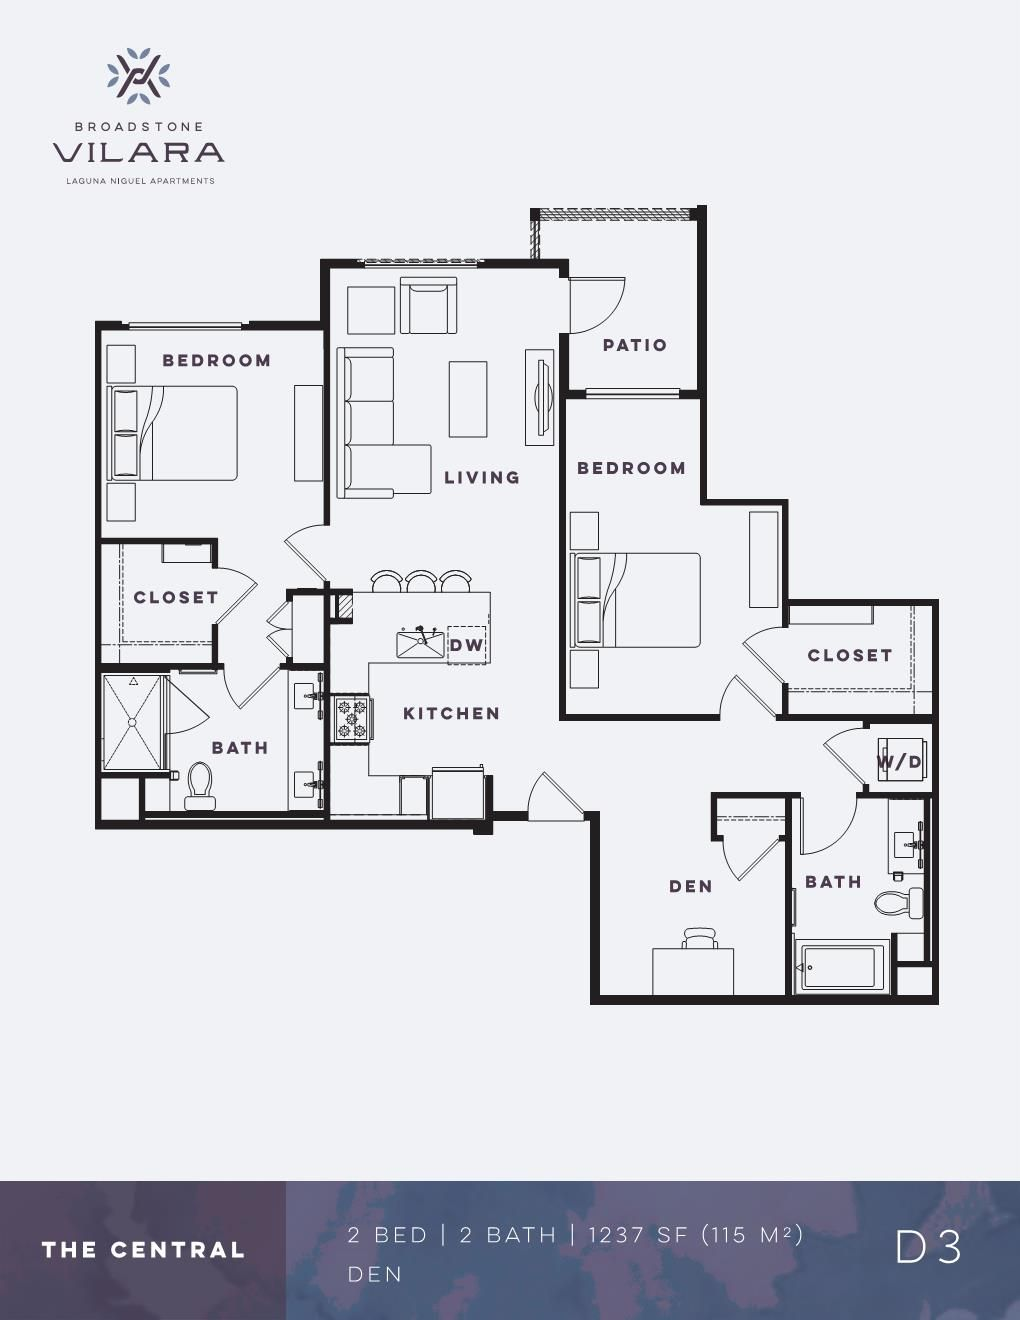 Two Bedroom Den Apartment The Central Broadstone Vilara In 2020 Floor Plans Apartment Floor Plans Apartment Plans